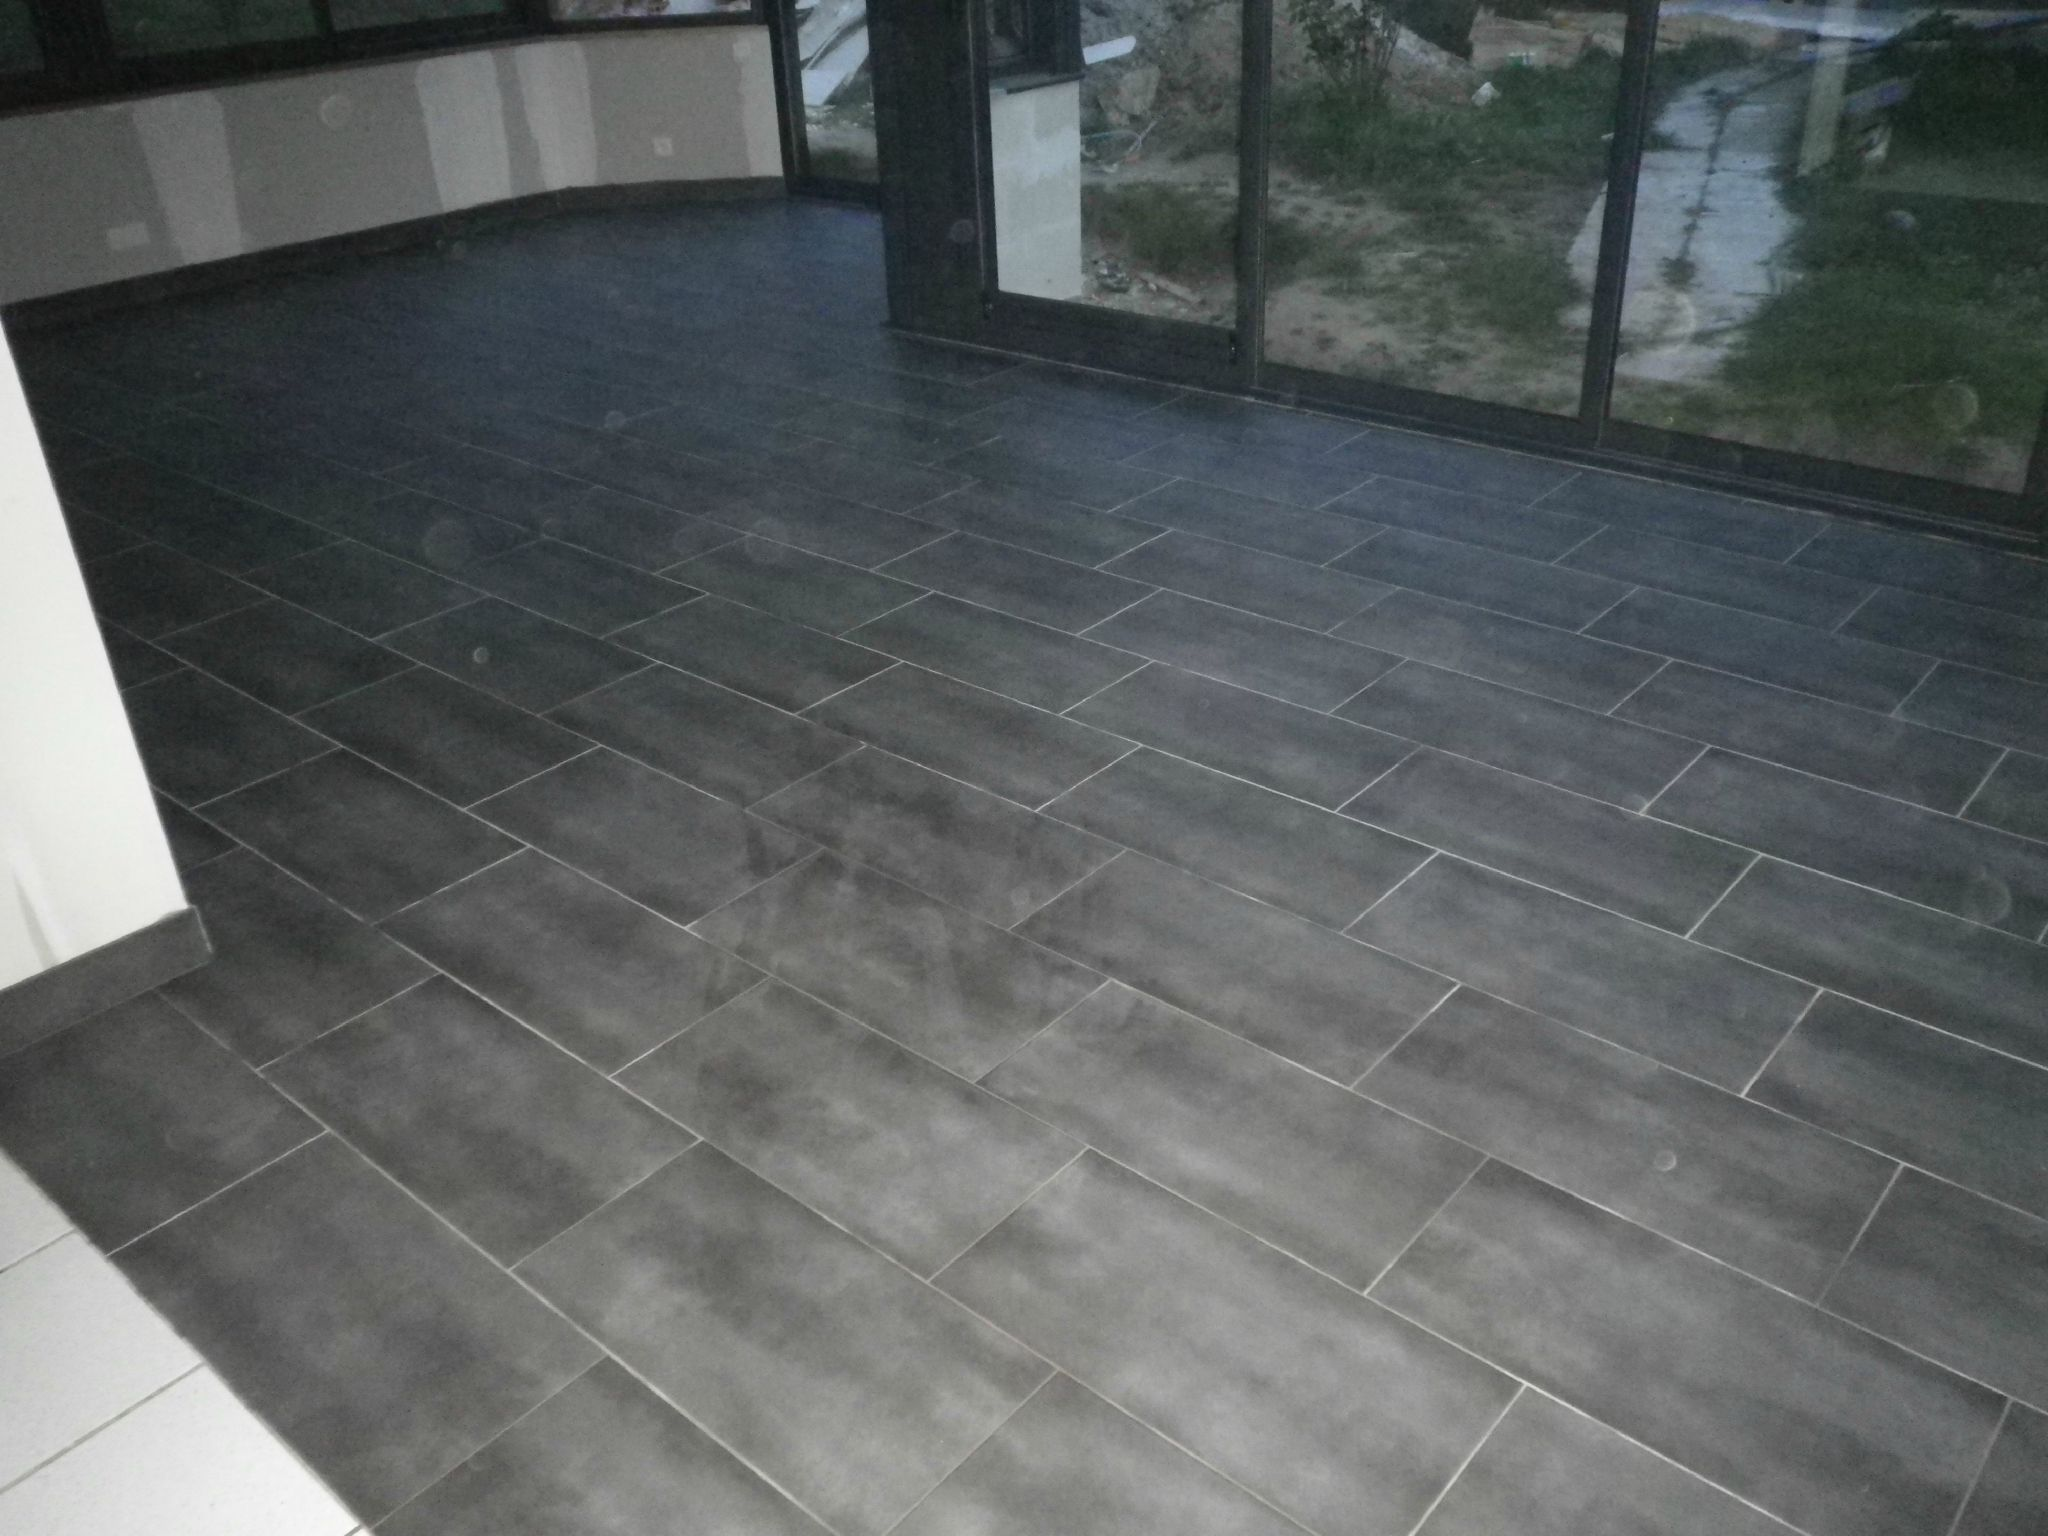 Carrelage 30x30 castorama for Carrelage castorama